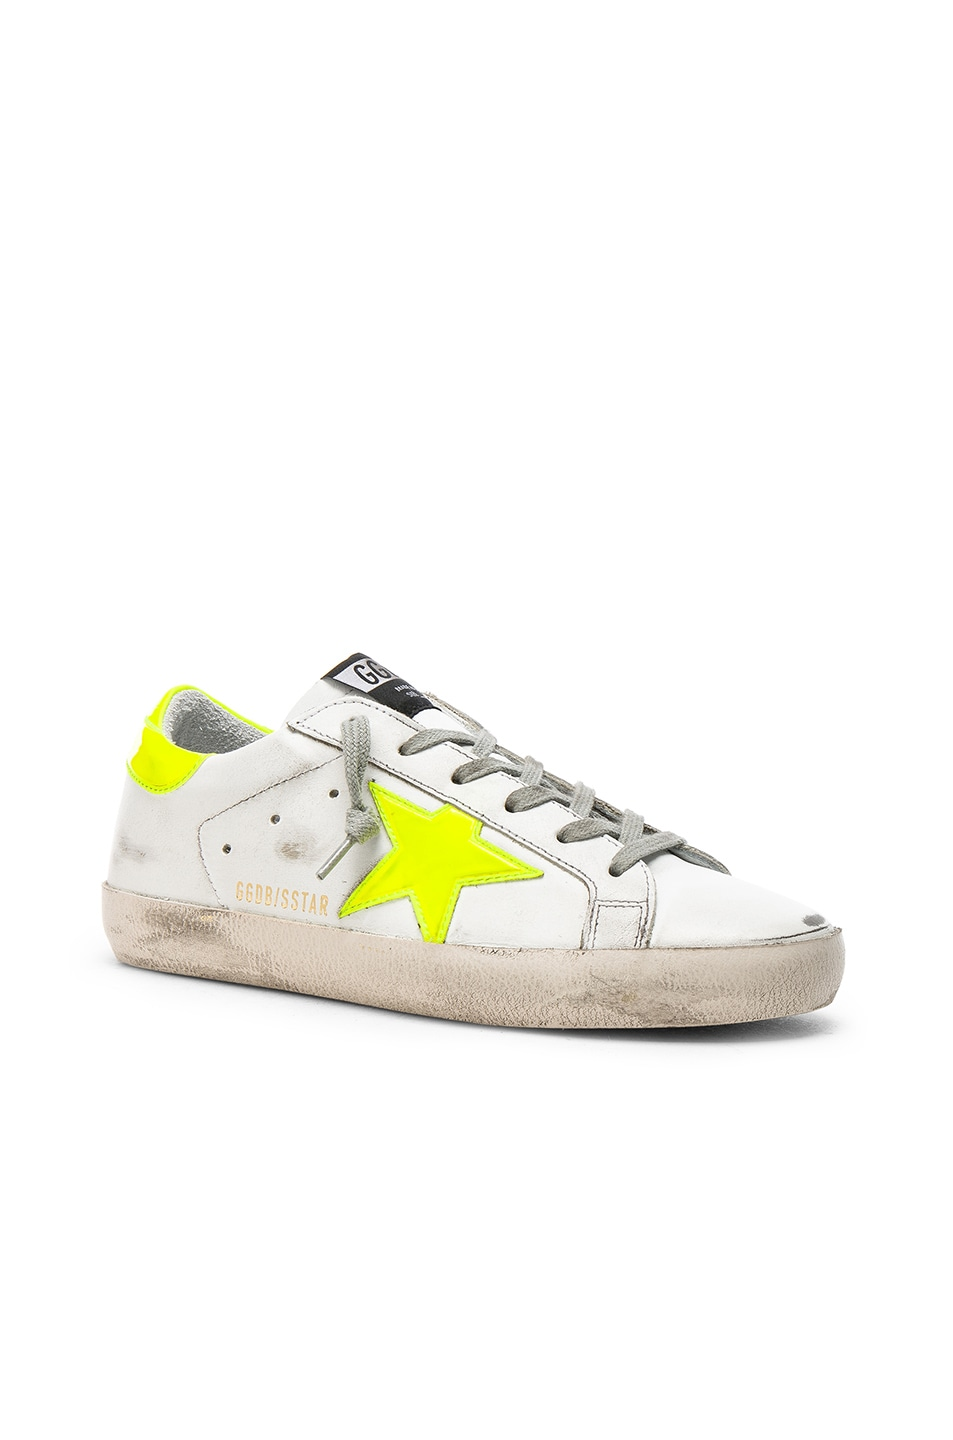 4bcf9900fb Golden Goose Leather Superstar Sneakers in White & Yellow Fluo Star ...